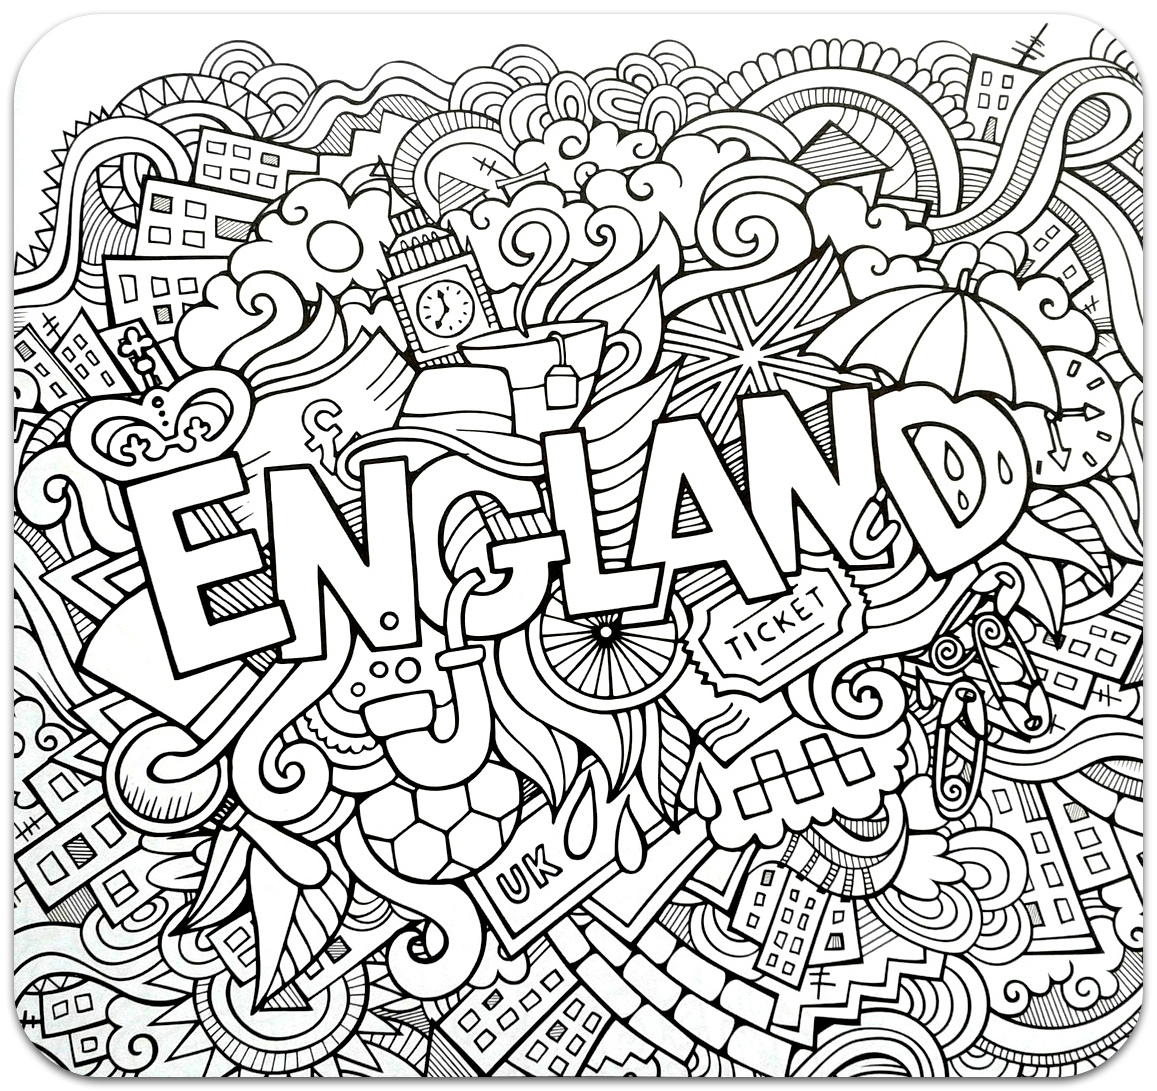 Coloring for adults, Coloring Antistress, країни, travel, raskraski antistress, страны, Englandcountries